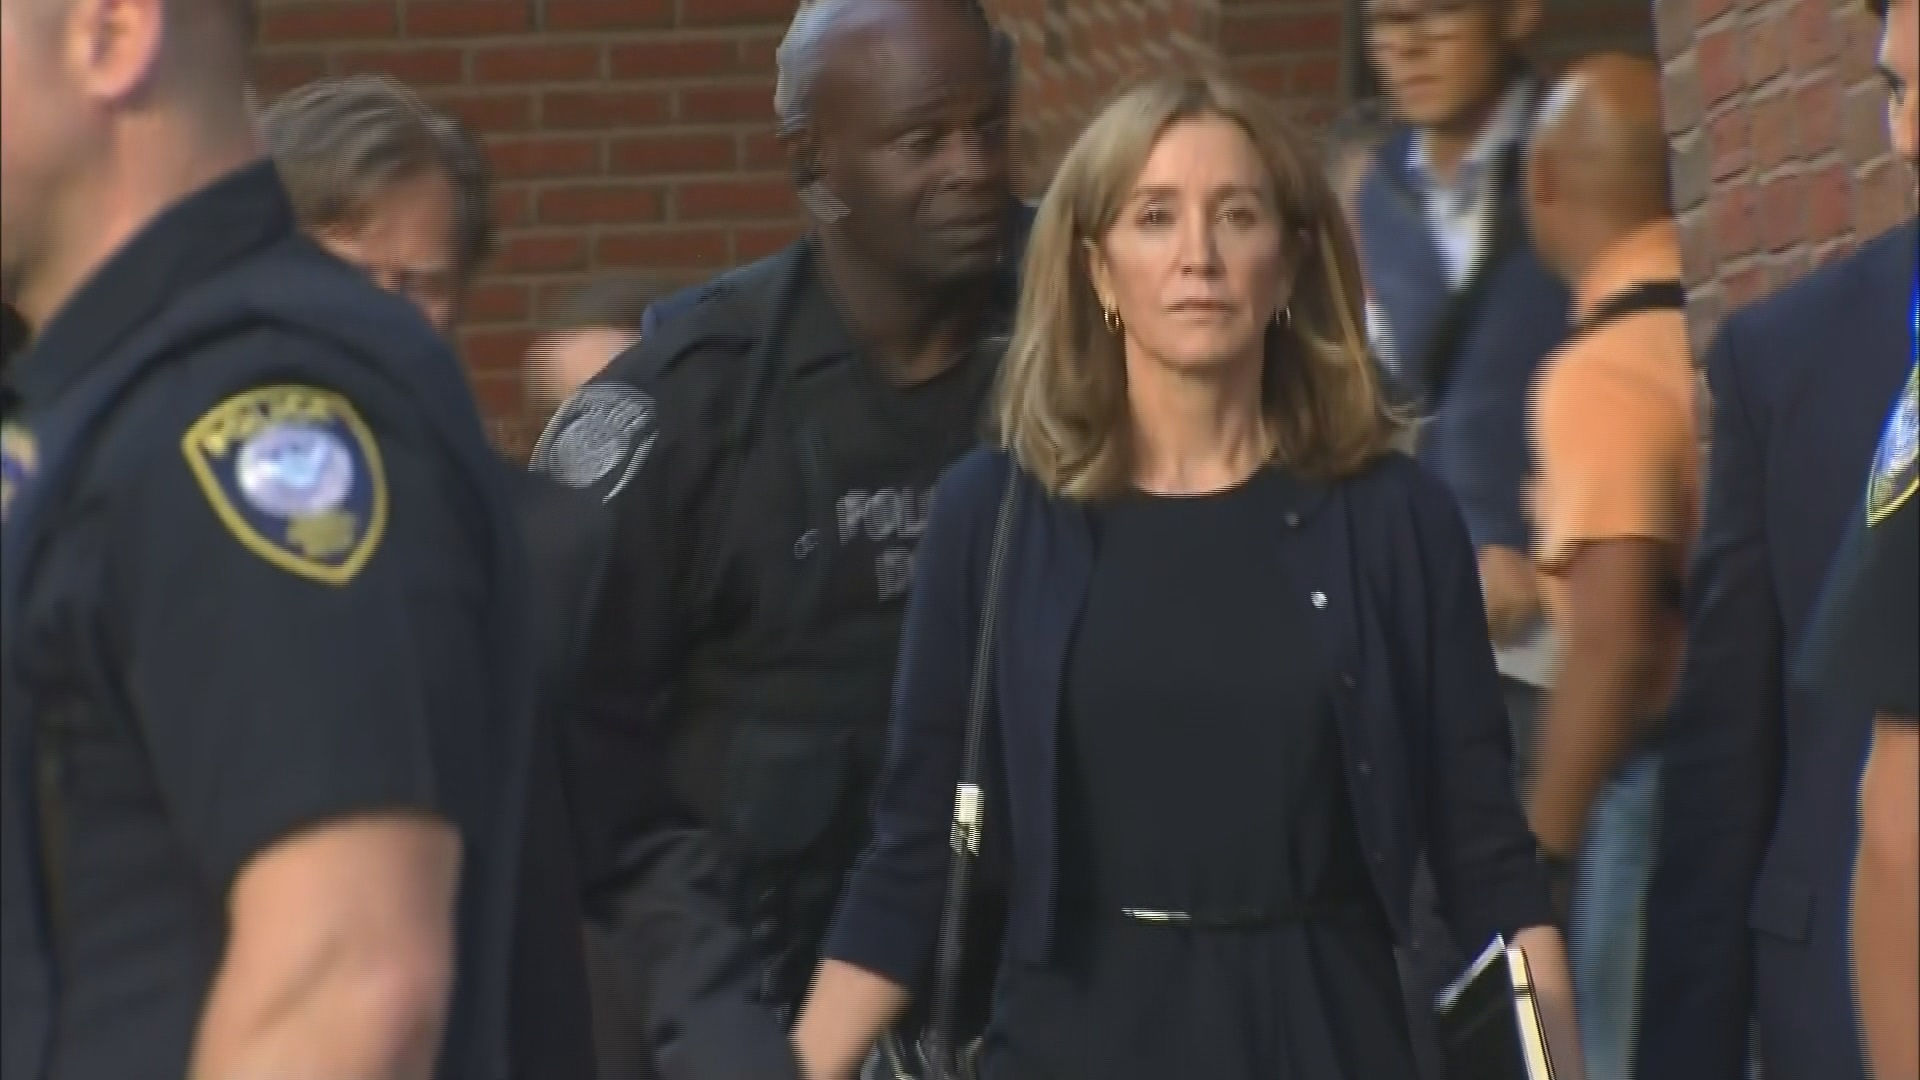 Surrey mom latest to be charged in U.S. college admissions scandal